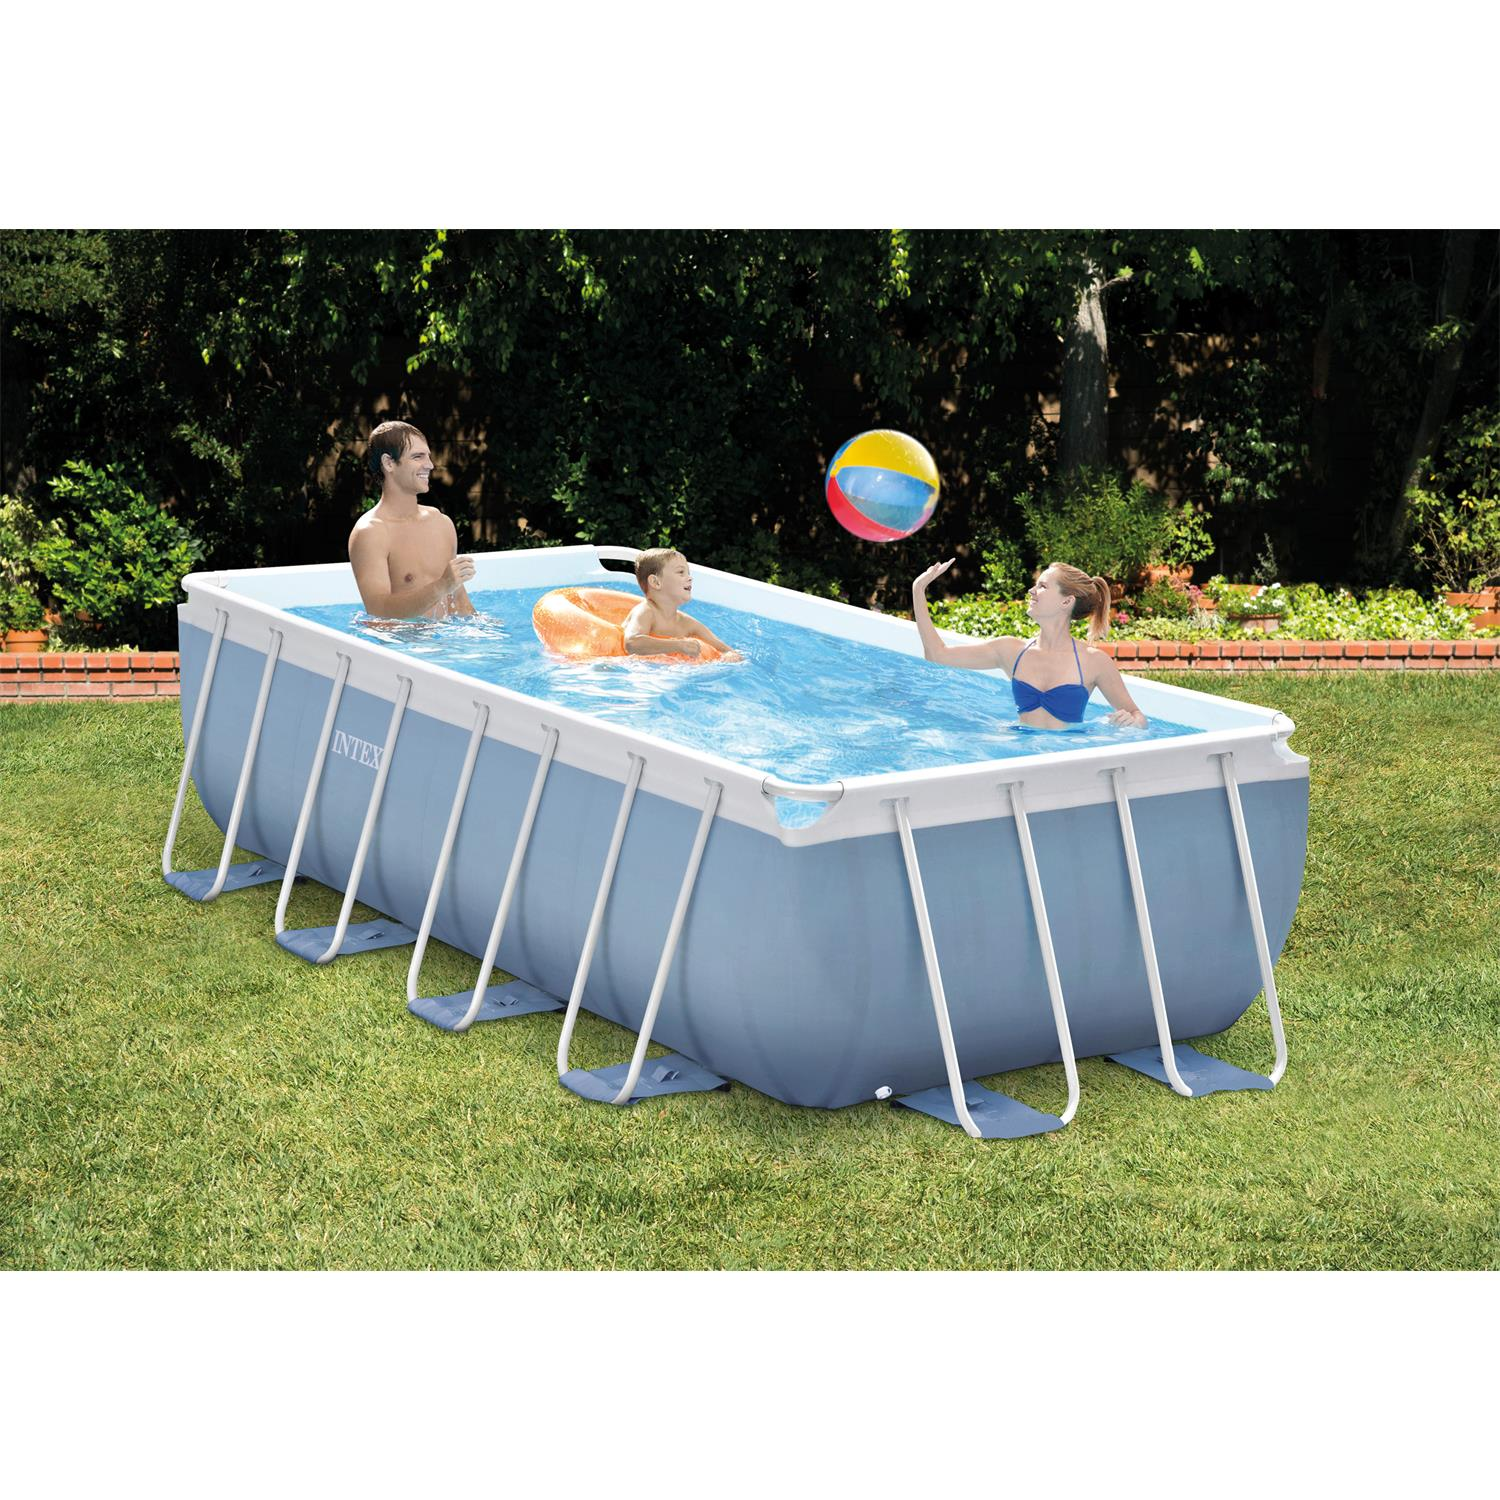 Pool Rund Ohne Pumpe Intex 26776gn Prismframe Pool Set Inkl Pumpe 400 X 200 X